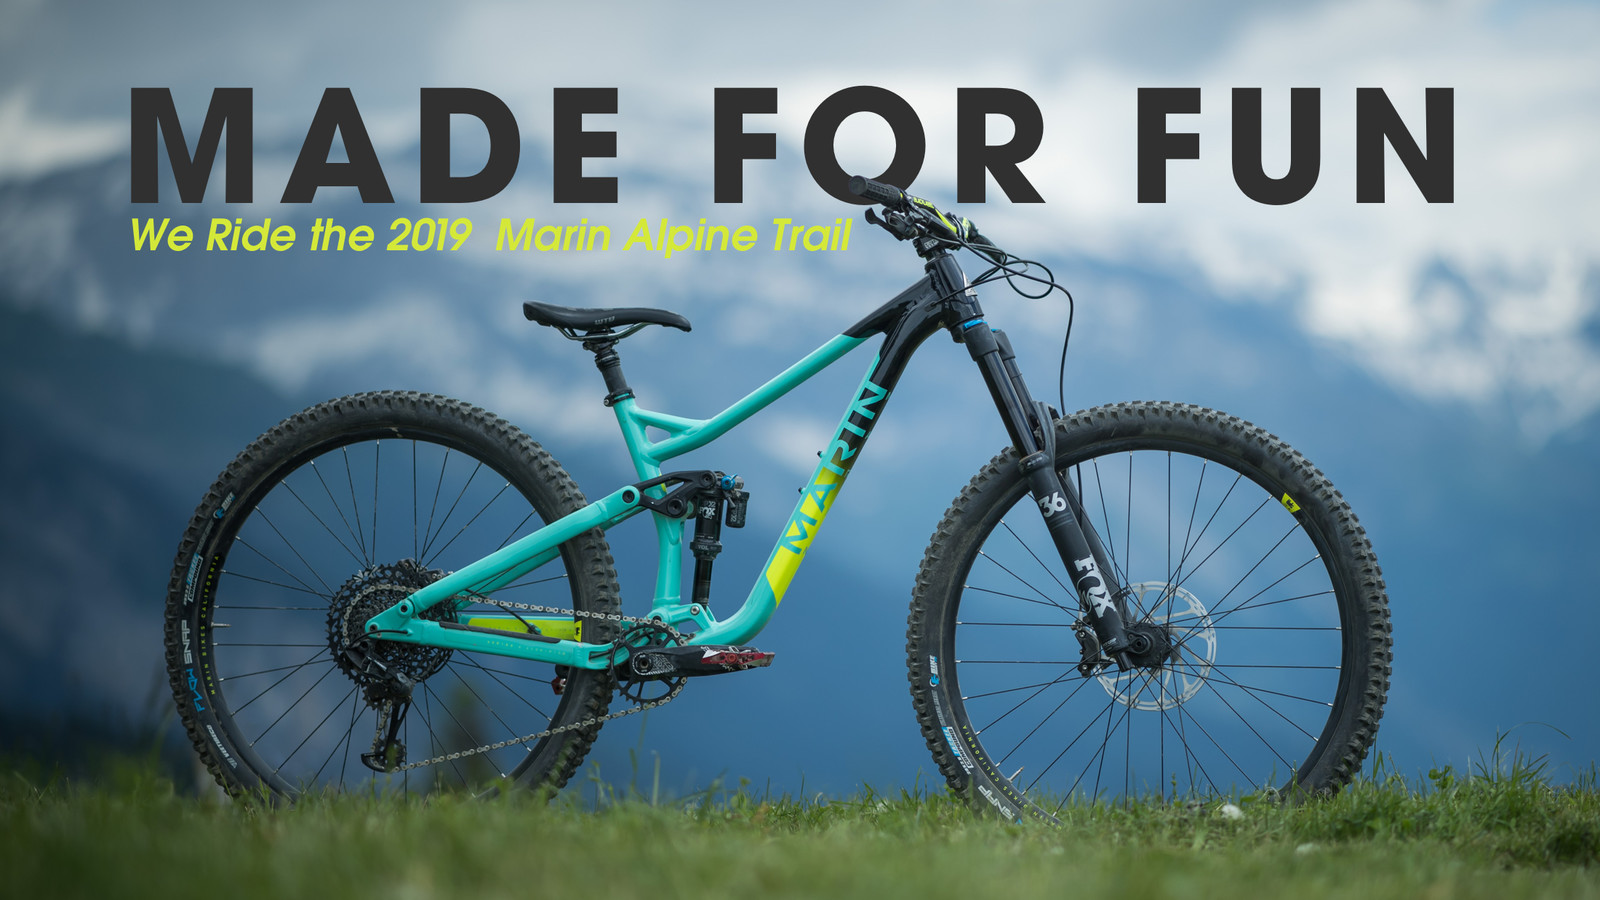 Riding the 2019 Marin Alpine Trail - Made for Fun